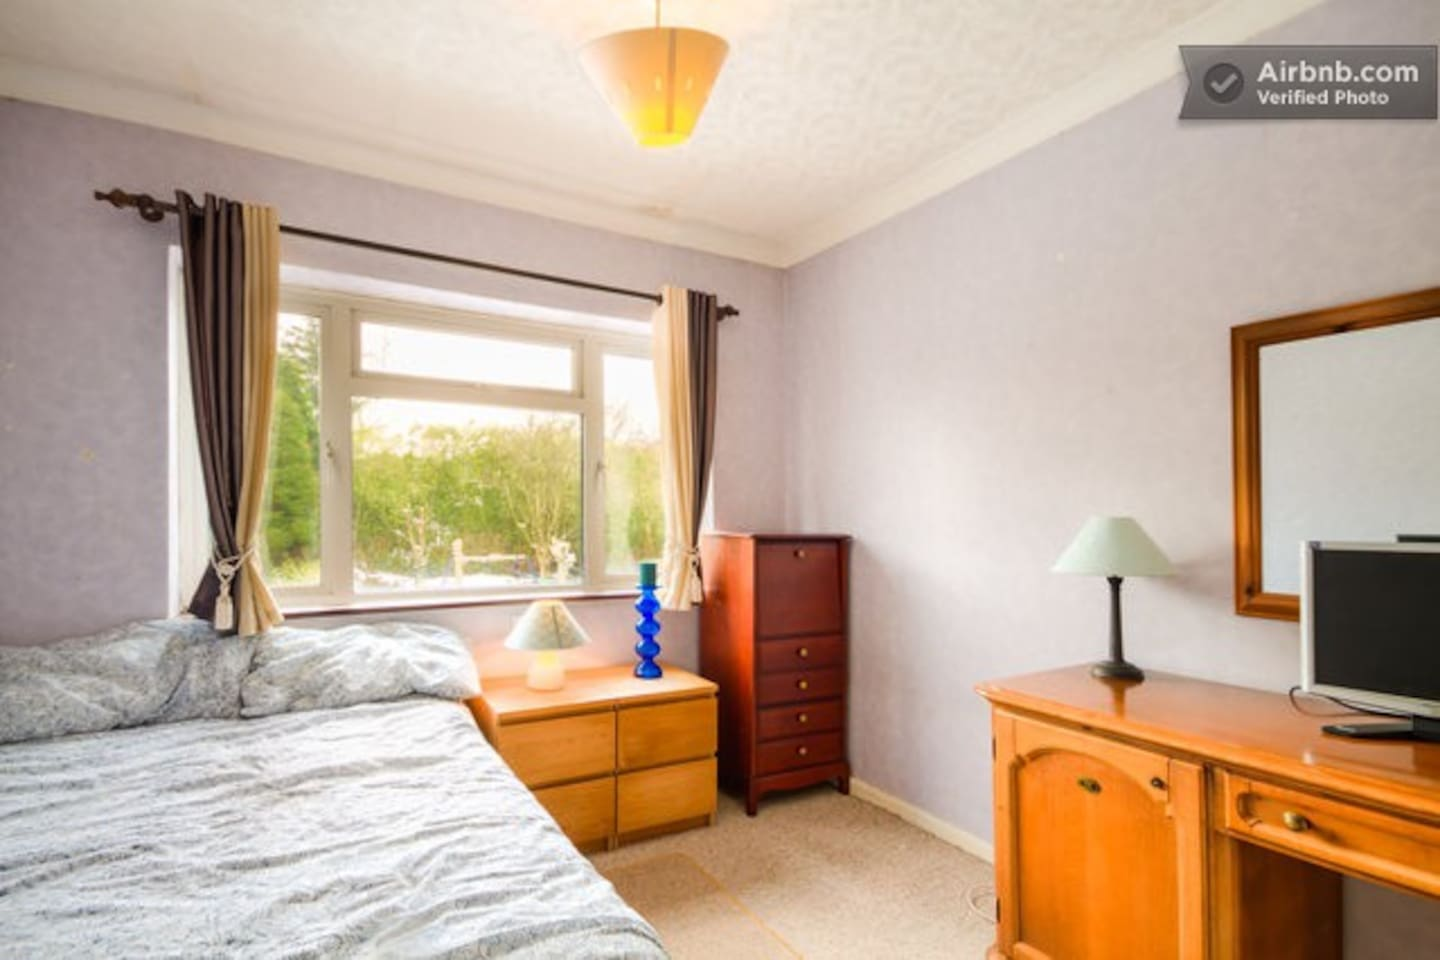 small double room nicely furnished